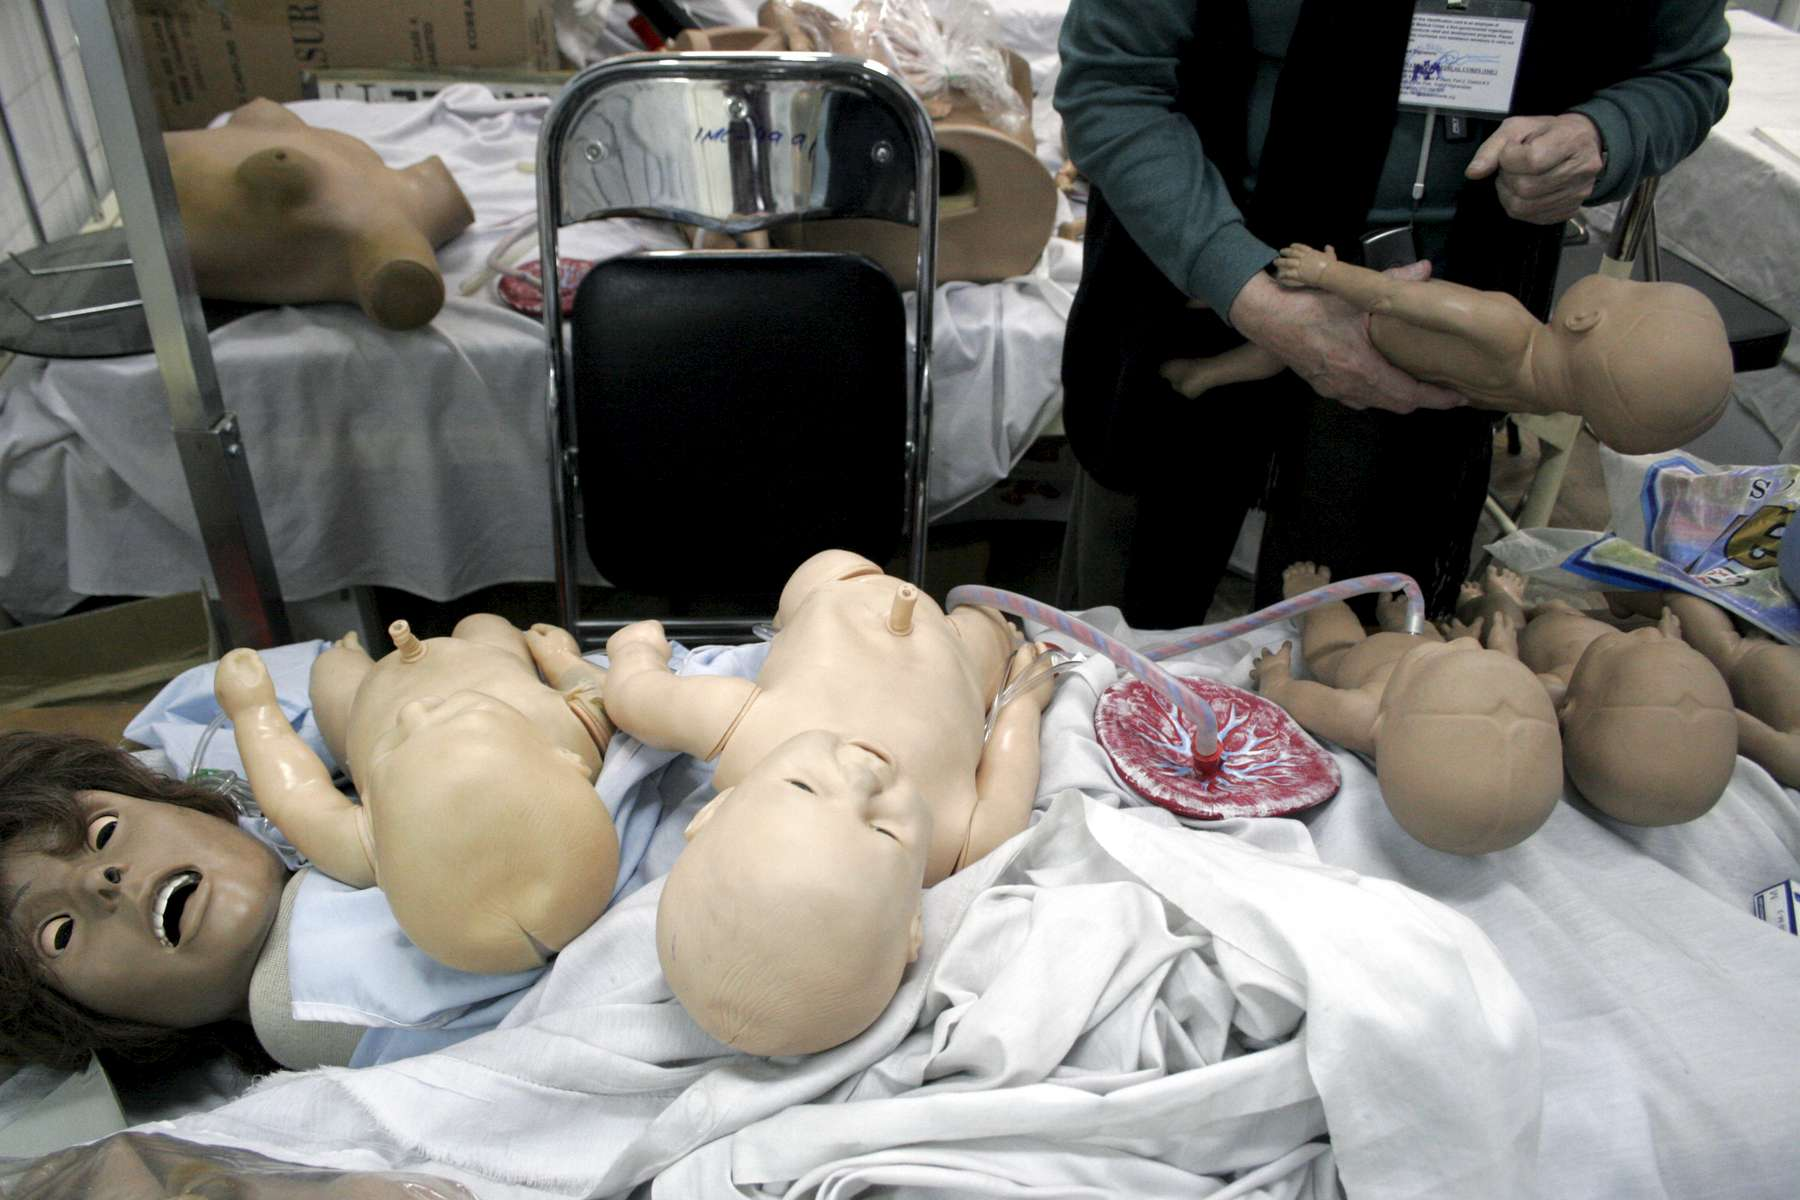 Simulation babies, a placenta and dummies of women used in practical training sessions for residents and midwives at the hospital.